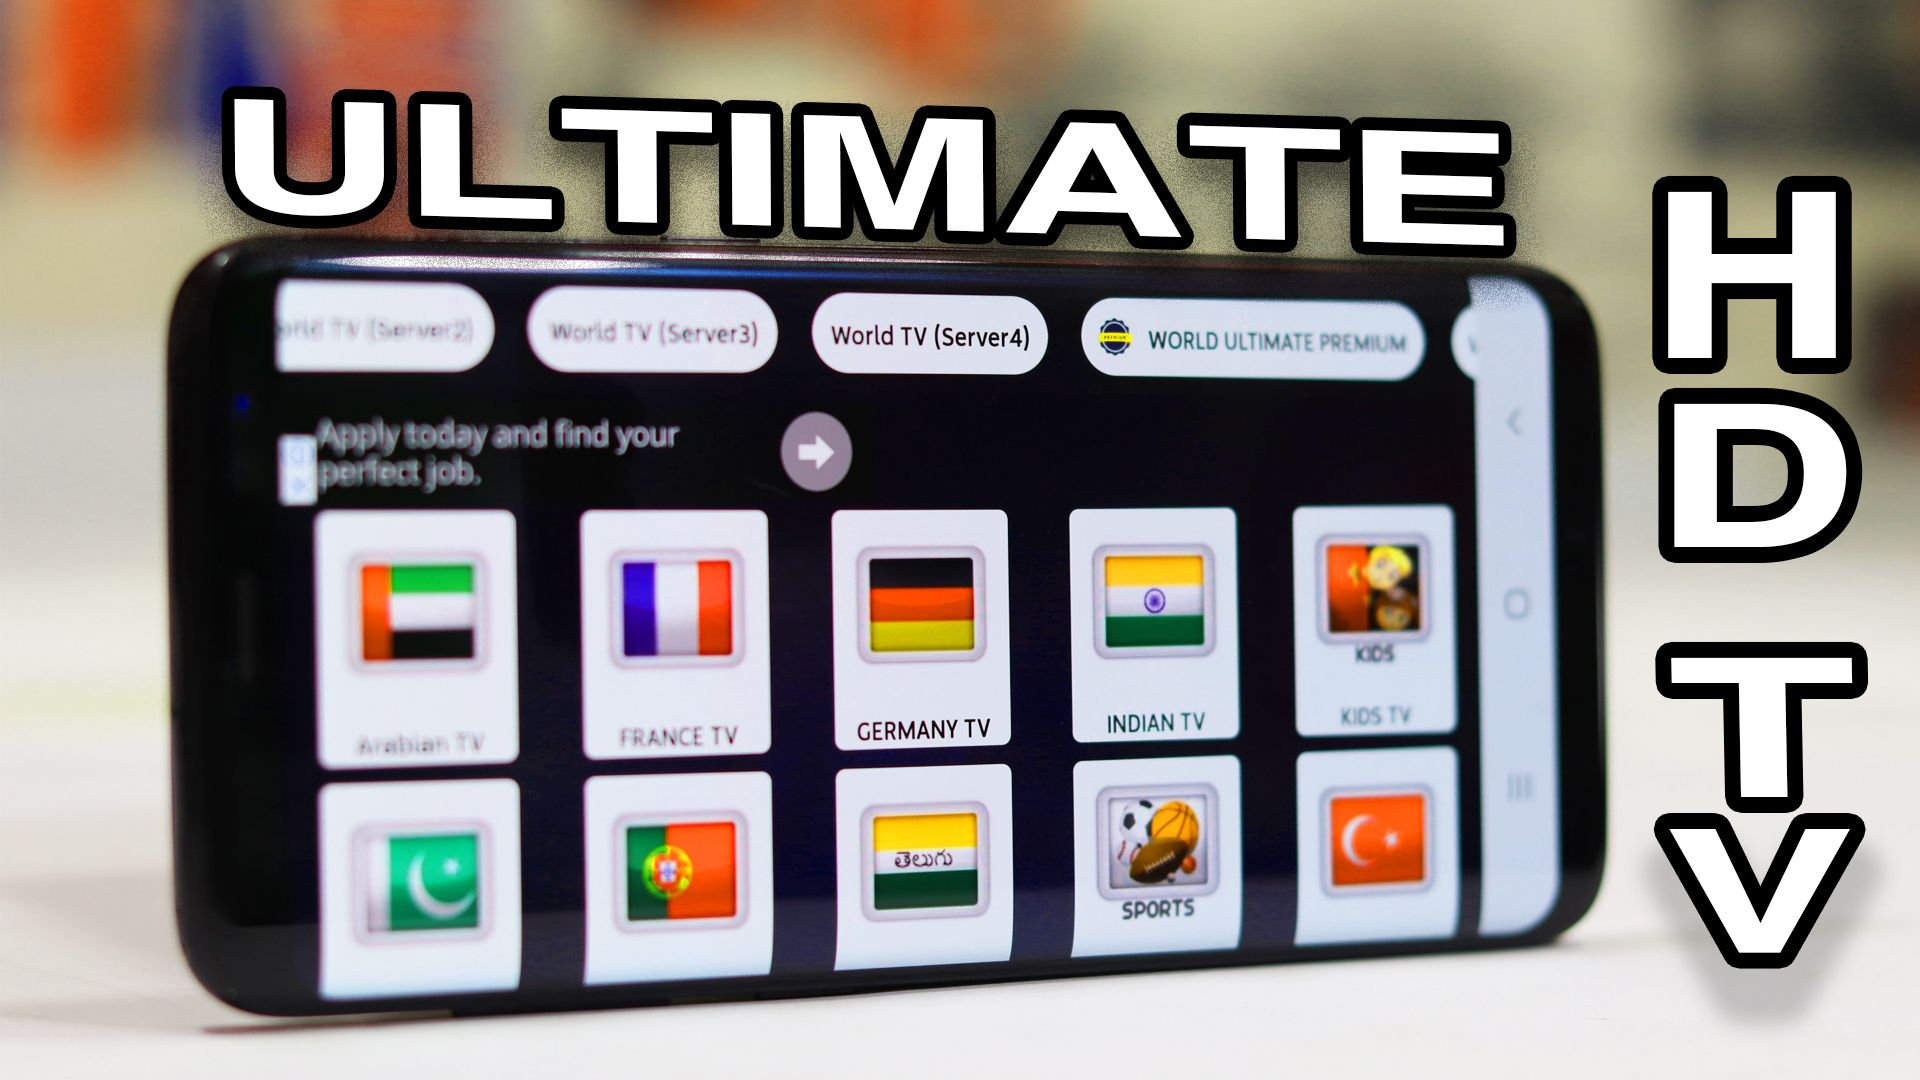 HDTV ULTIMATE APK IS AN EXCELLENT LIVE TV AND LIVE SPORTS